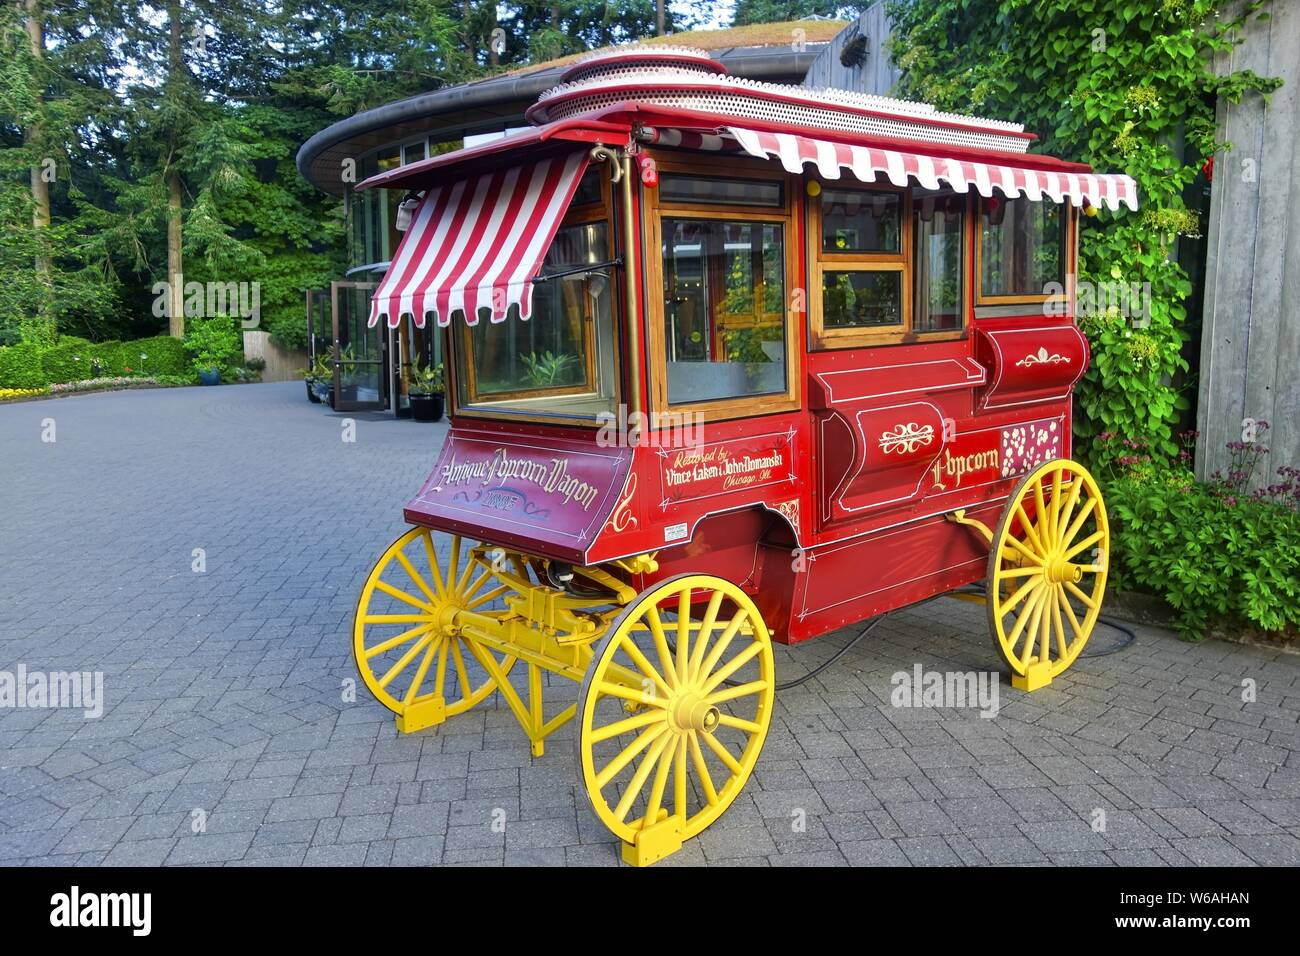 Antique Red Popcorn Wagon Restoration Model With Yellow Wooden Wheels Stock Photo